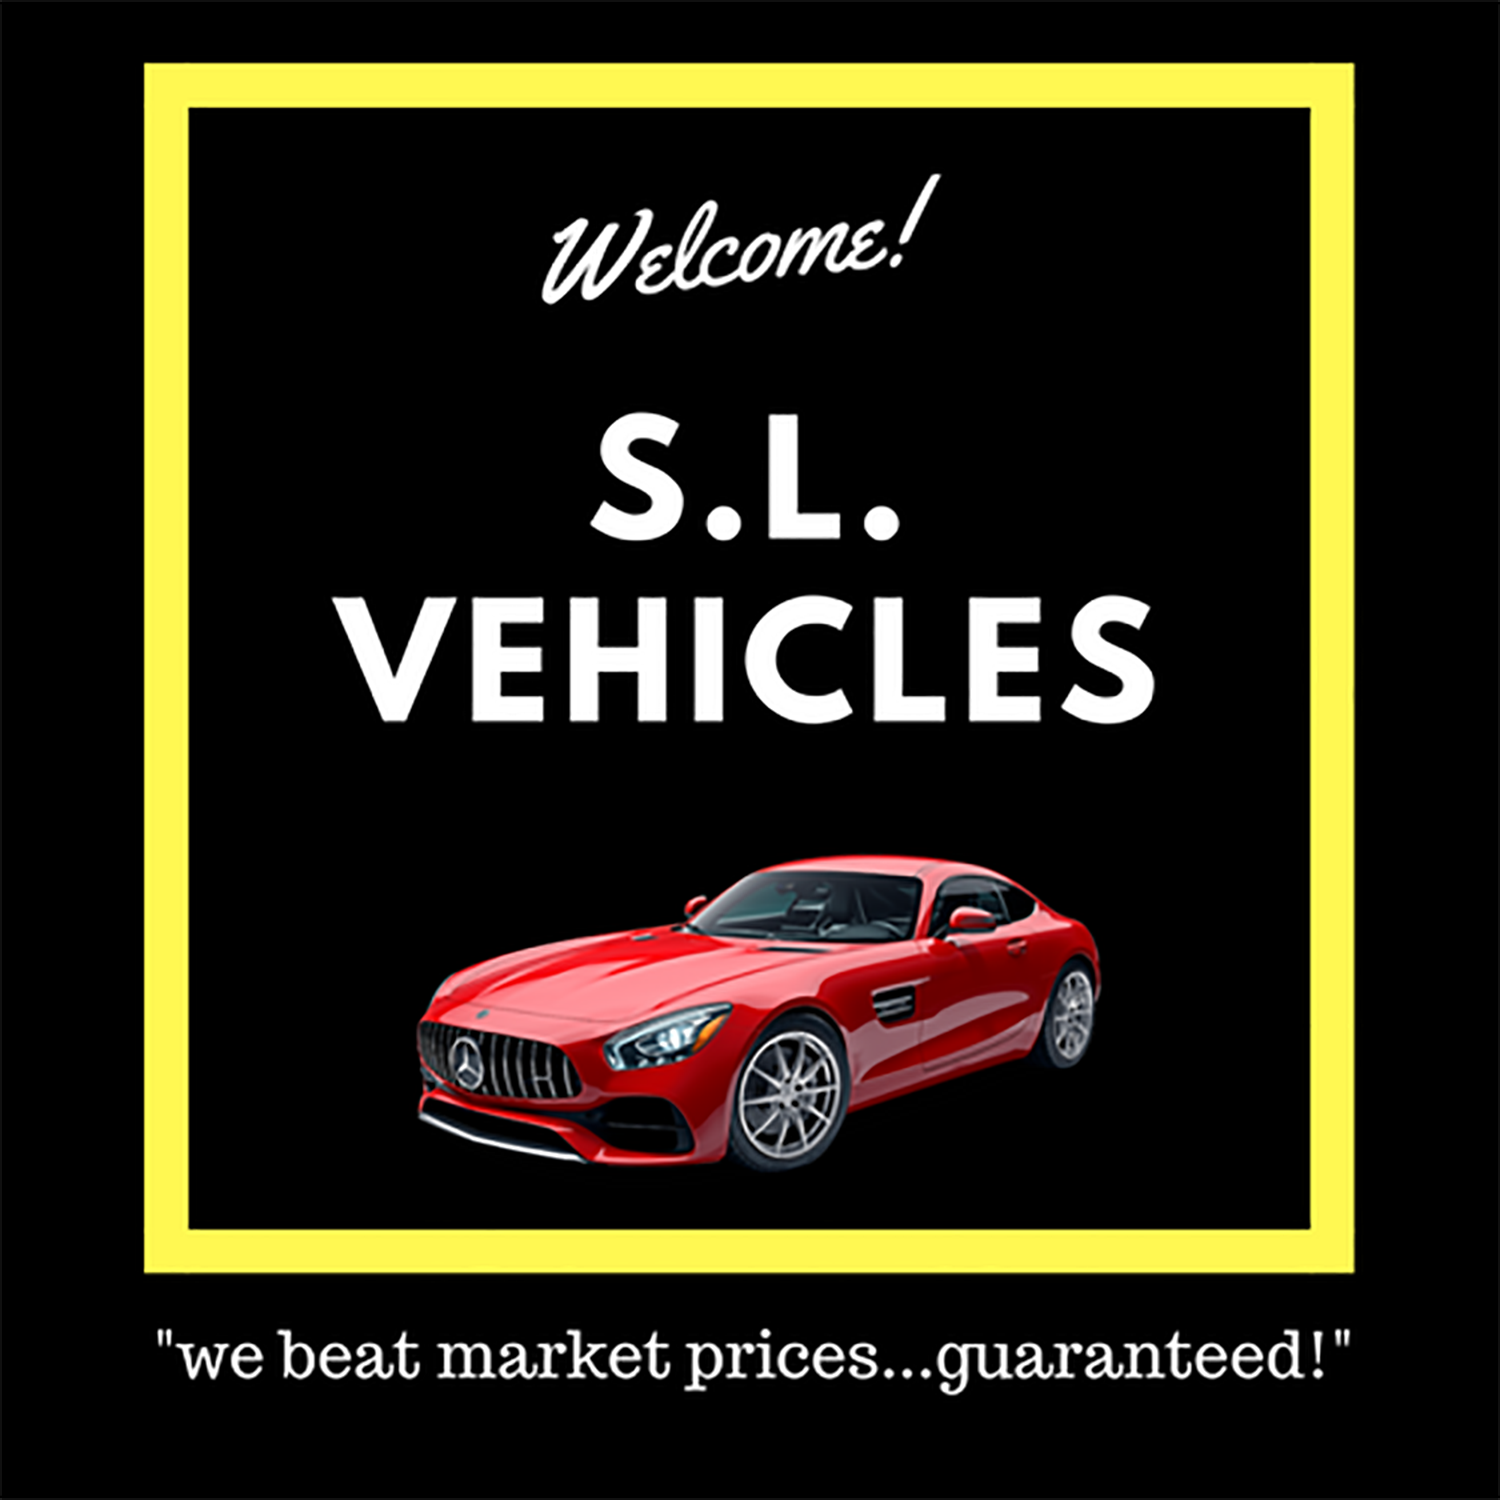 Seized Luxury Vehicles, LLC